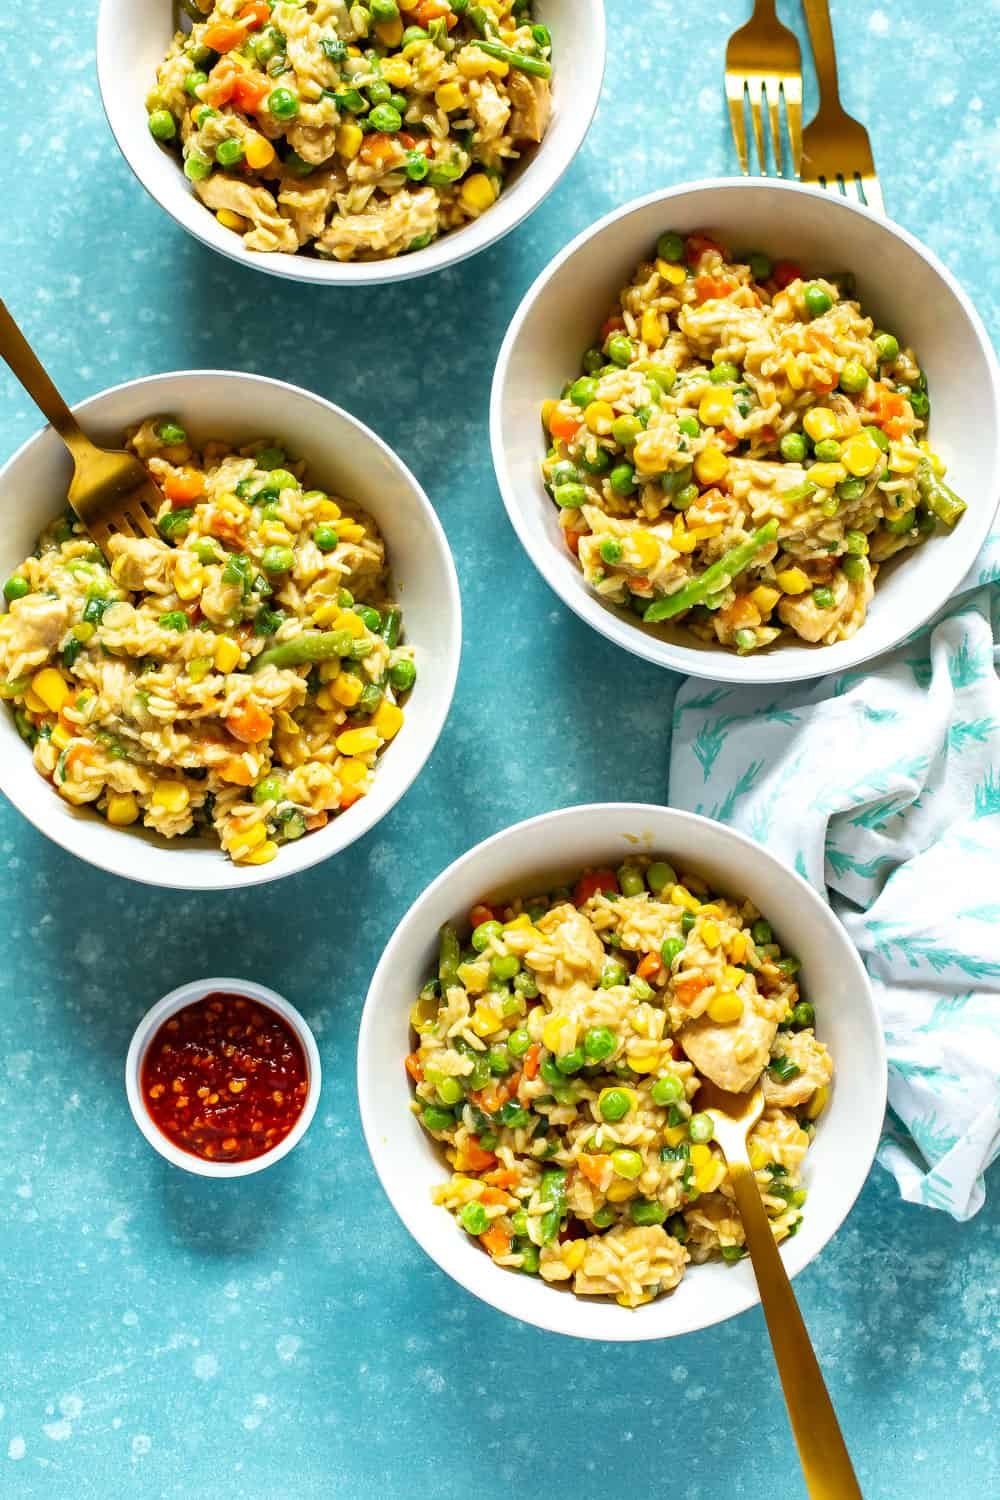 Instant Pot Chicken Fried Rice served in white bowls